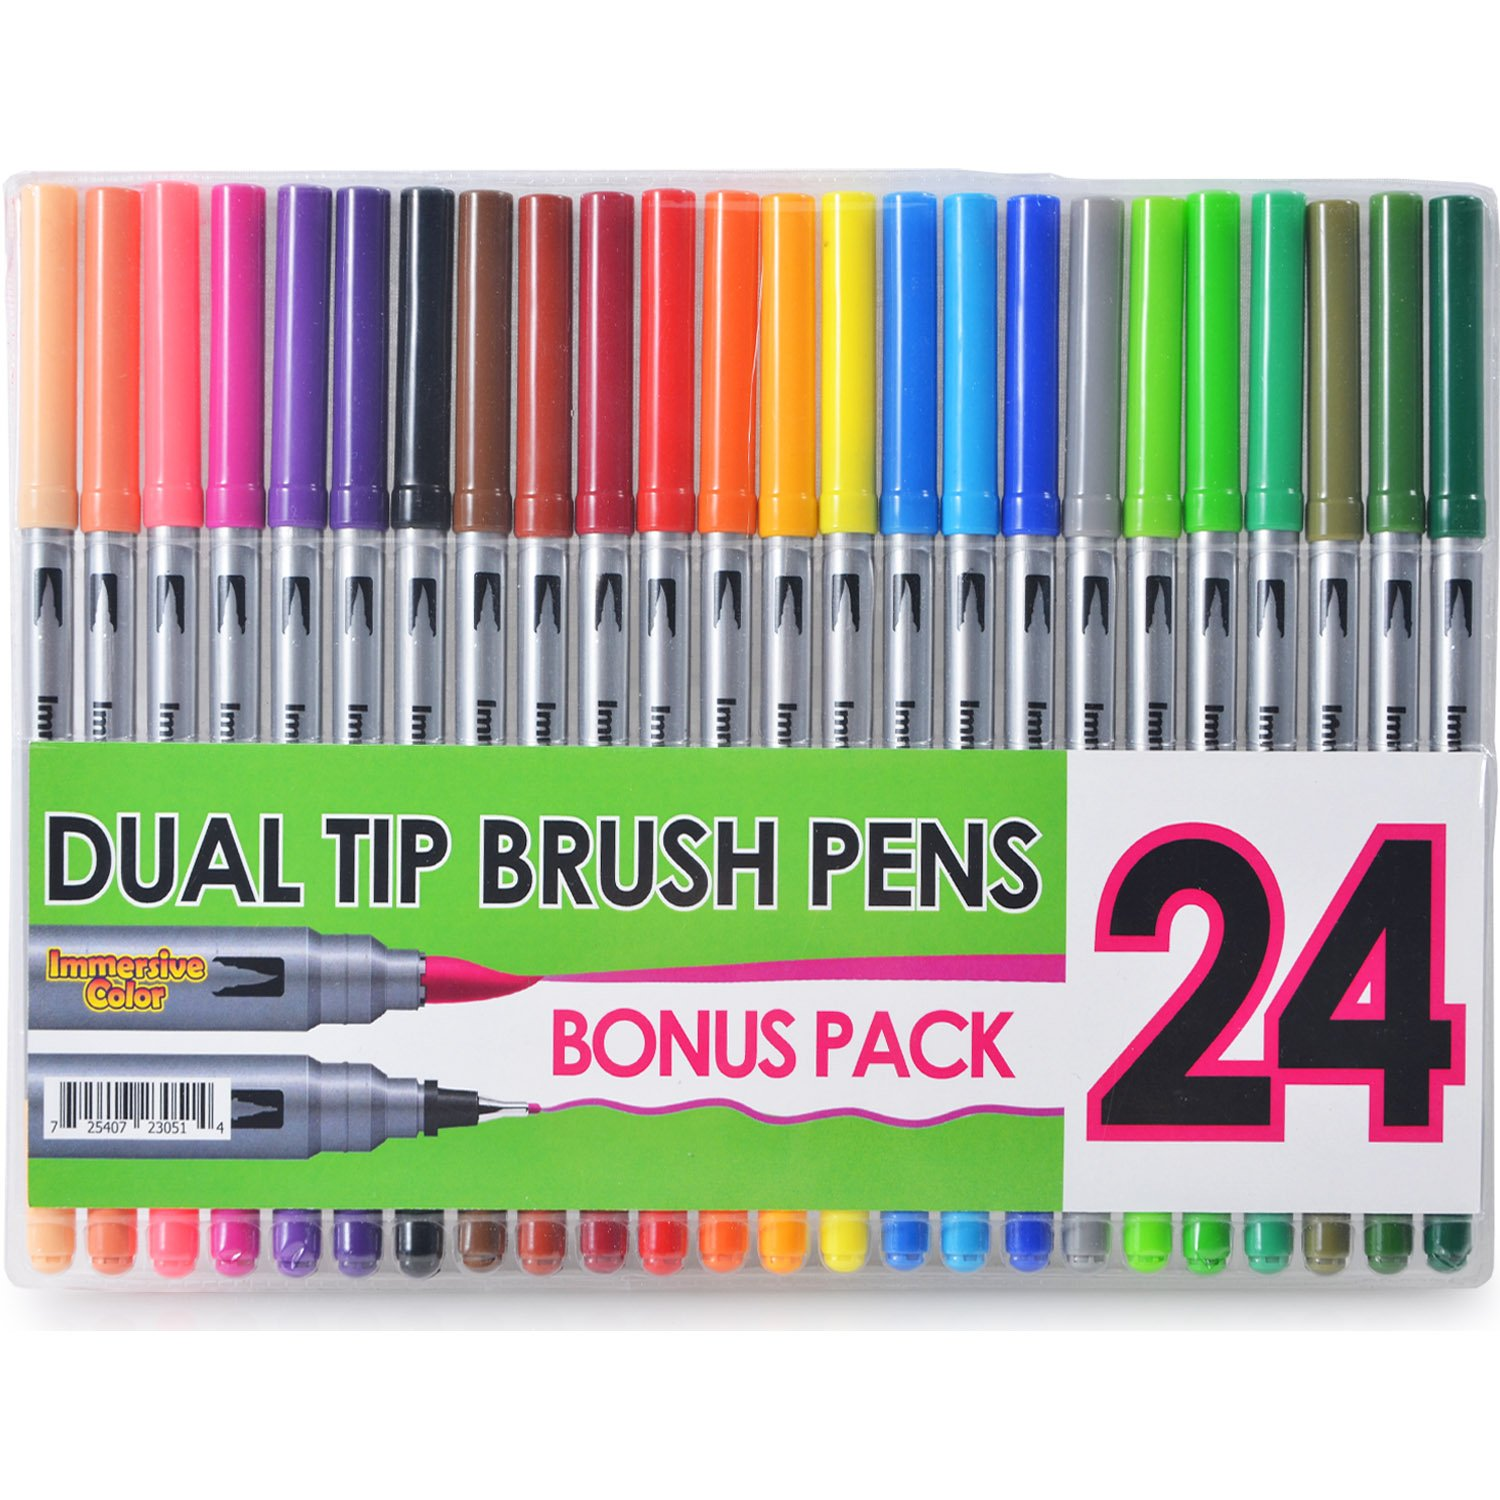 Immersive Color Dual Tip Brush Pens with Fineliner Tip (Pack of 24) 24 Brush Pens